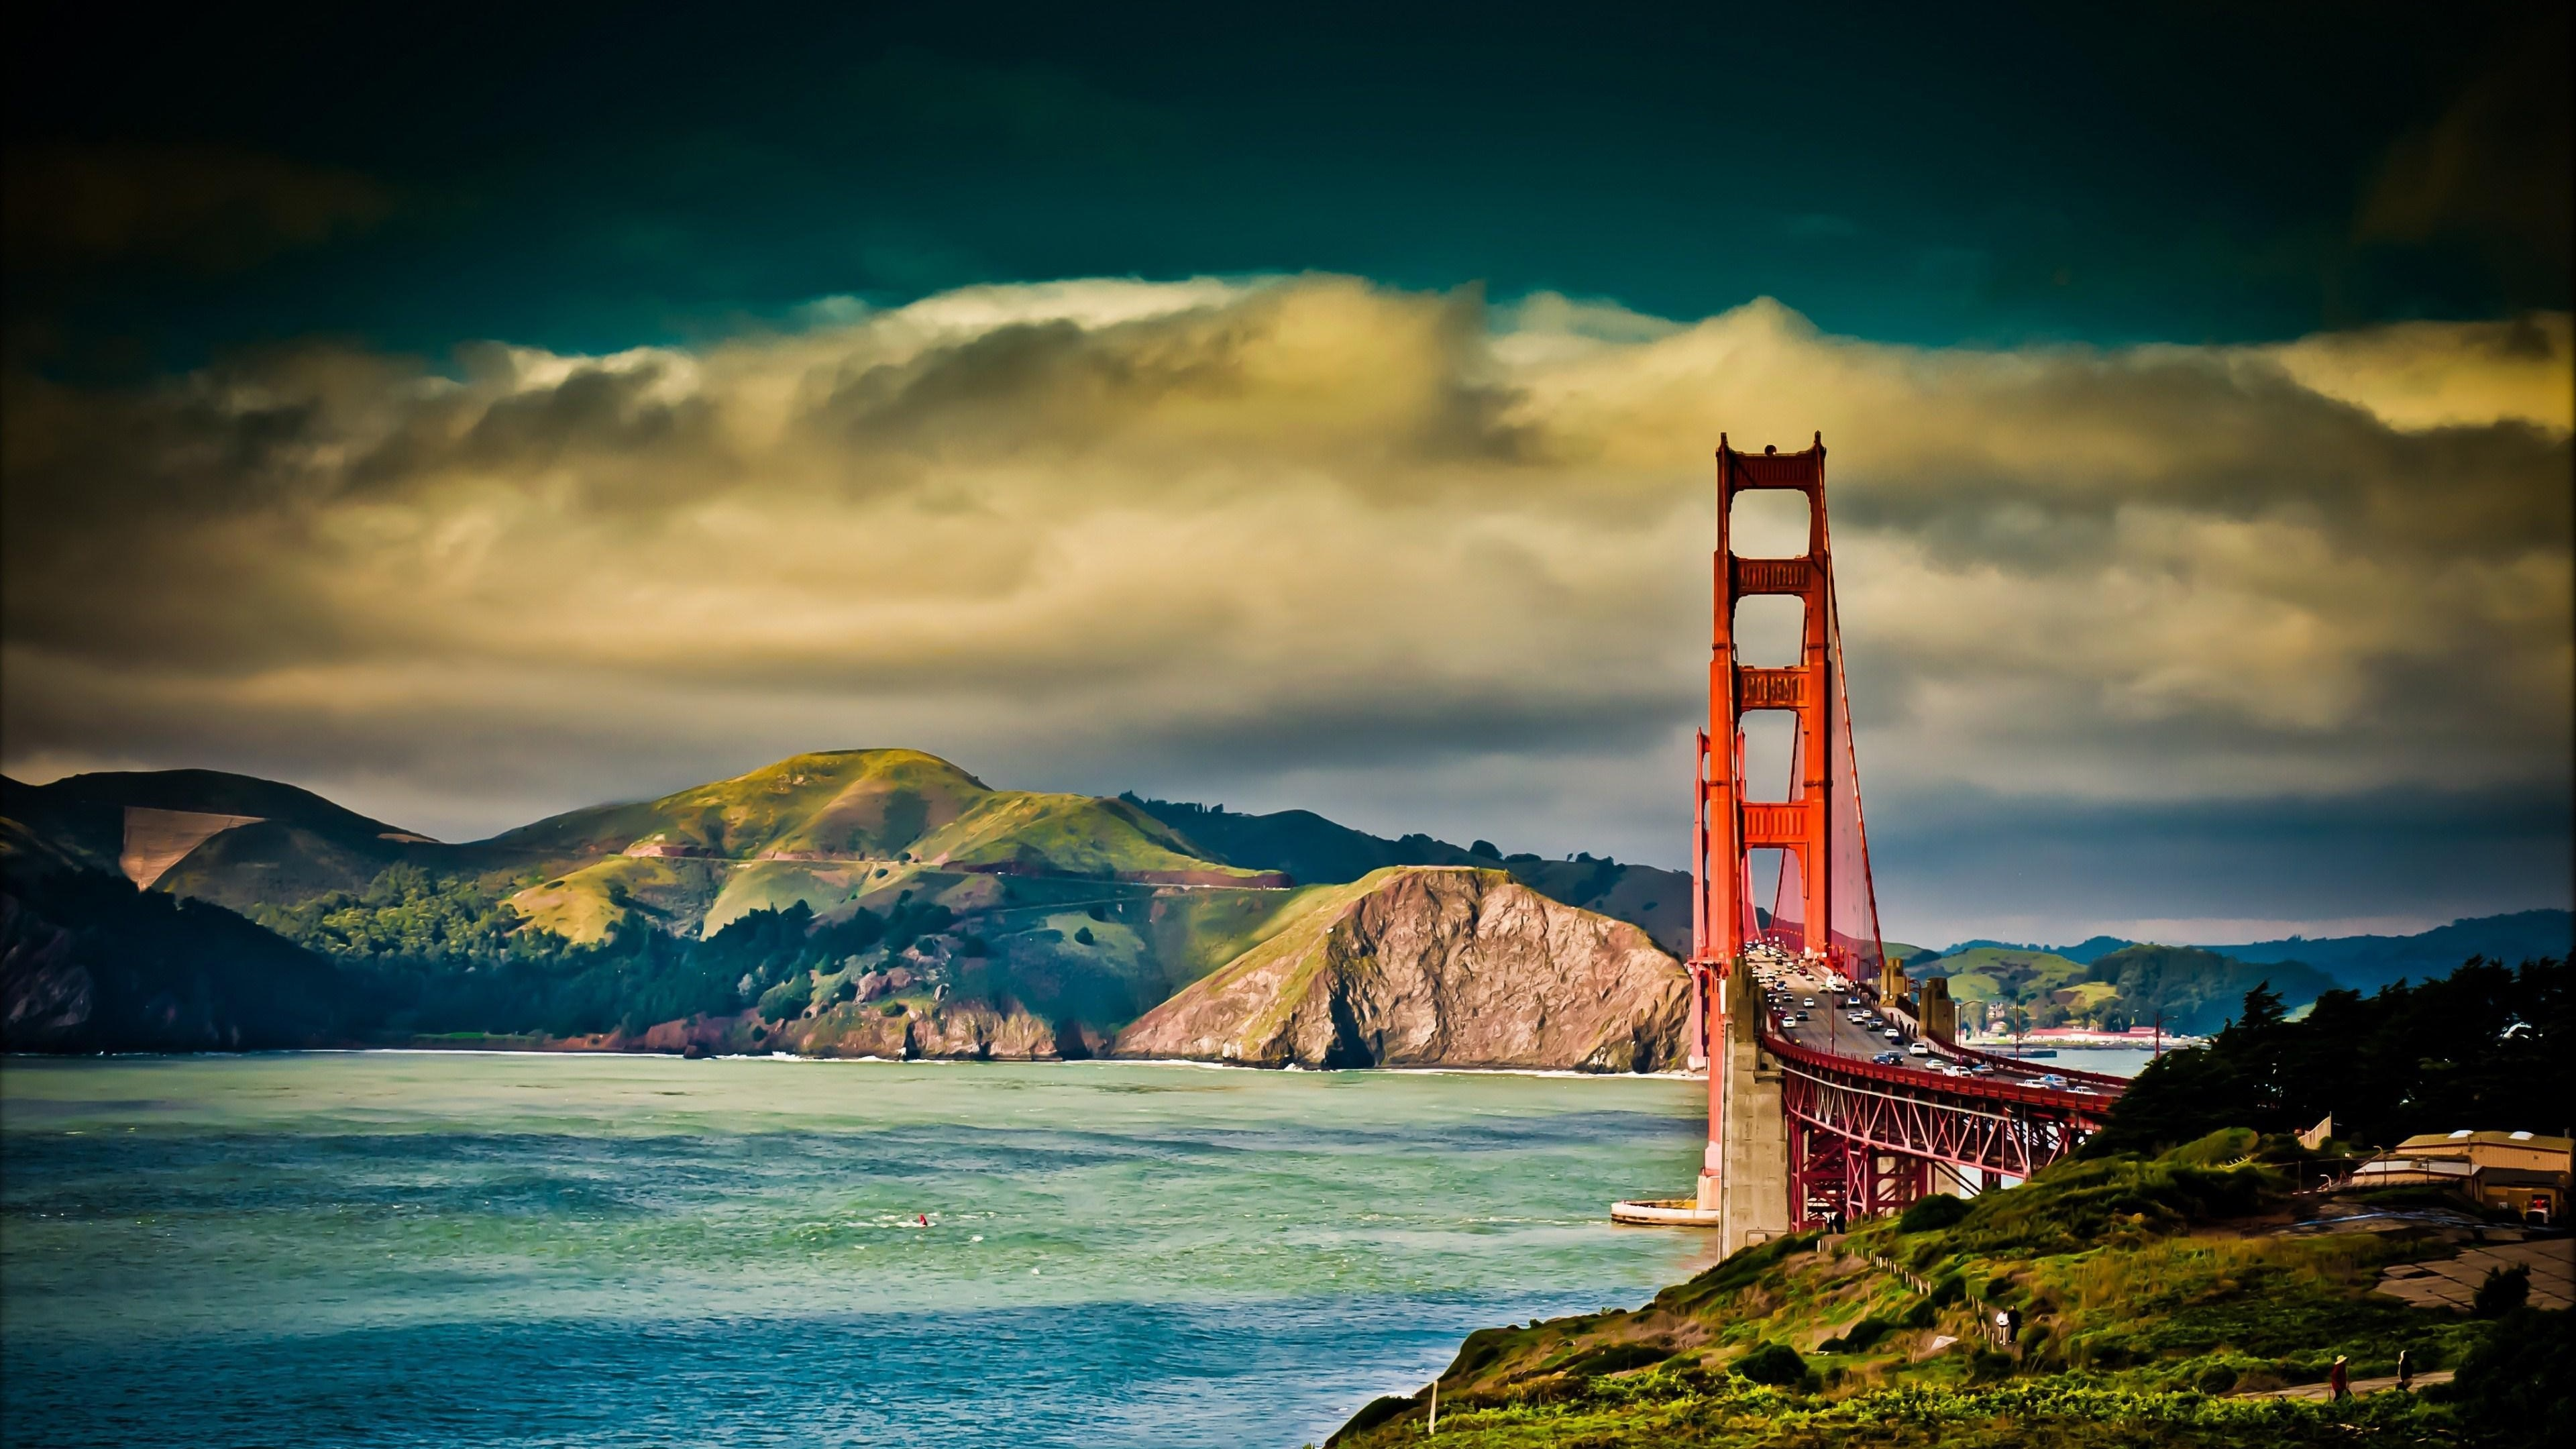 Golden Gate Wallpaper 4k Ultra Hd Collections - 4k Ultra 4k Hintergrundbilder , HD Wallpaper & Backgrounds